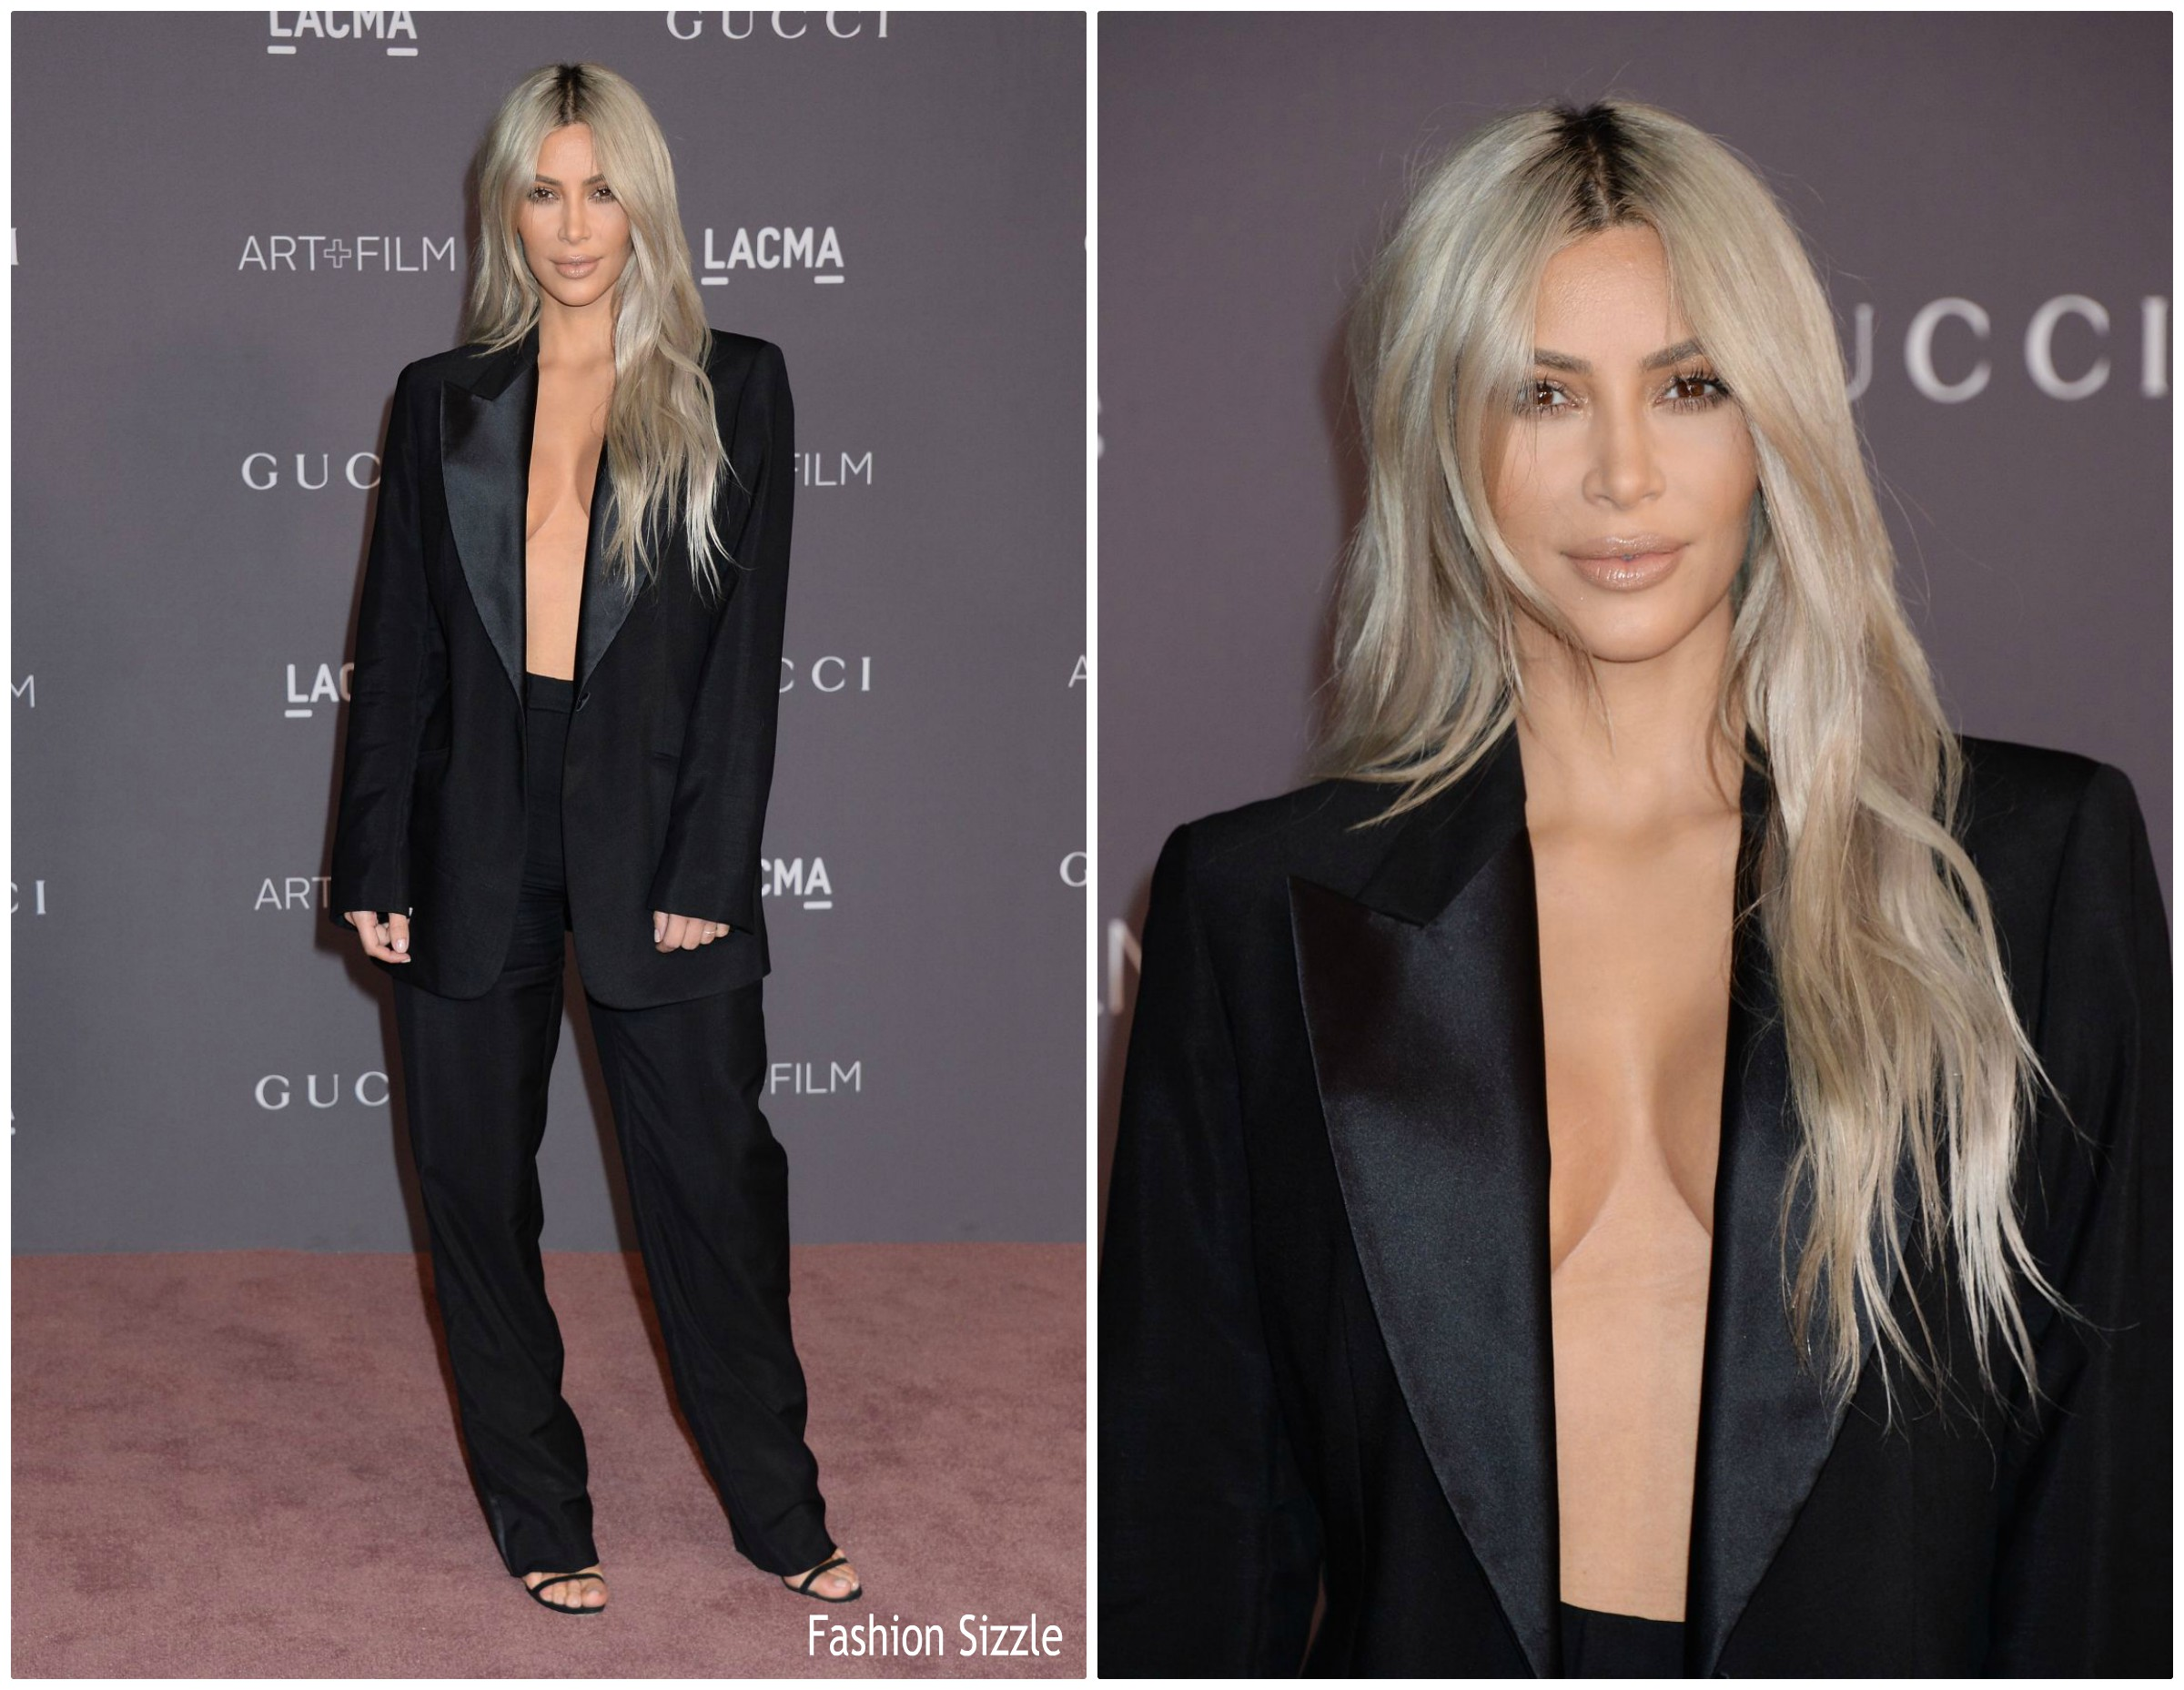 kim-kardashian-west-in-vintage-gucci-2017-lacma-art-film-gala